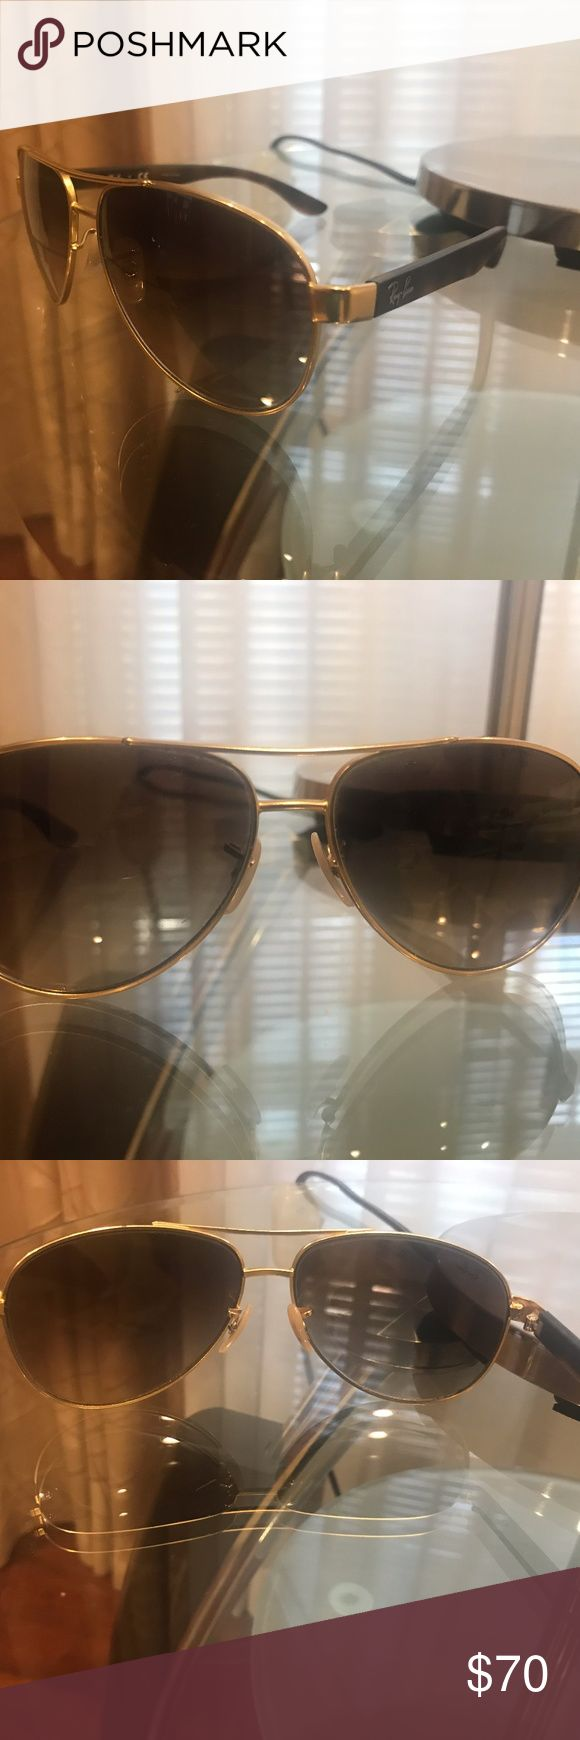 Ray Ban AVIATOR Matte Satin Gold Havana Tortoise B Great condition. Worn only a couple times Ray-Ban Accessories Sunglasses